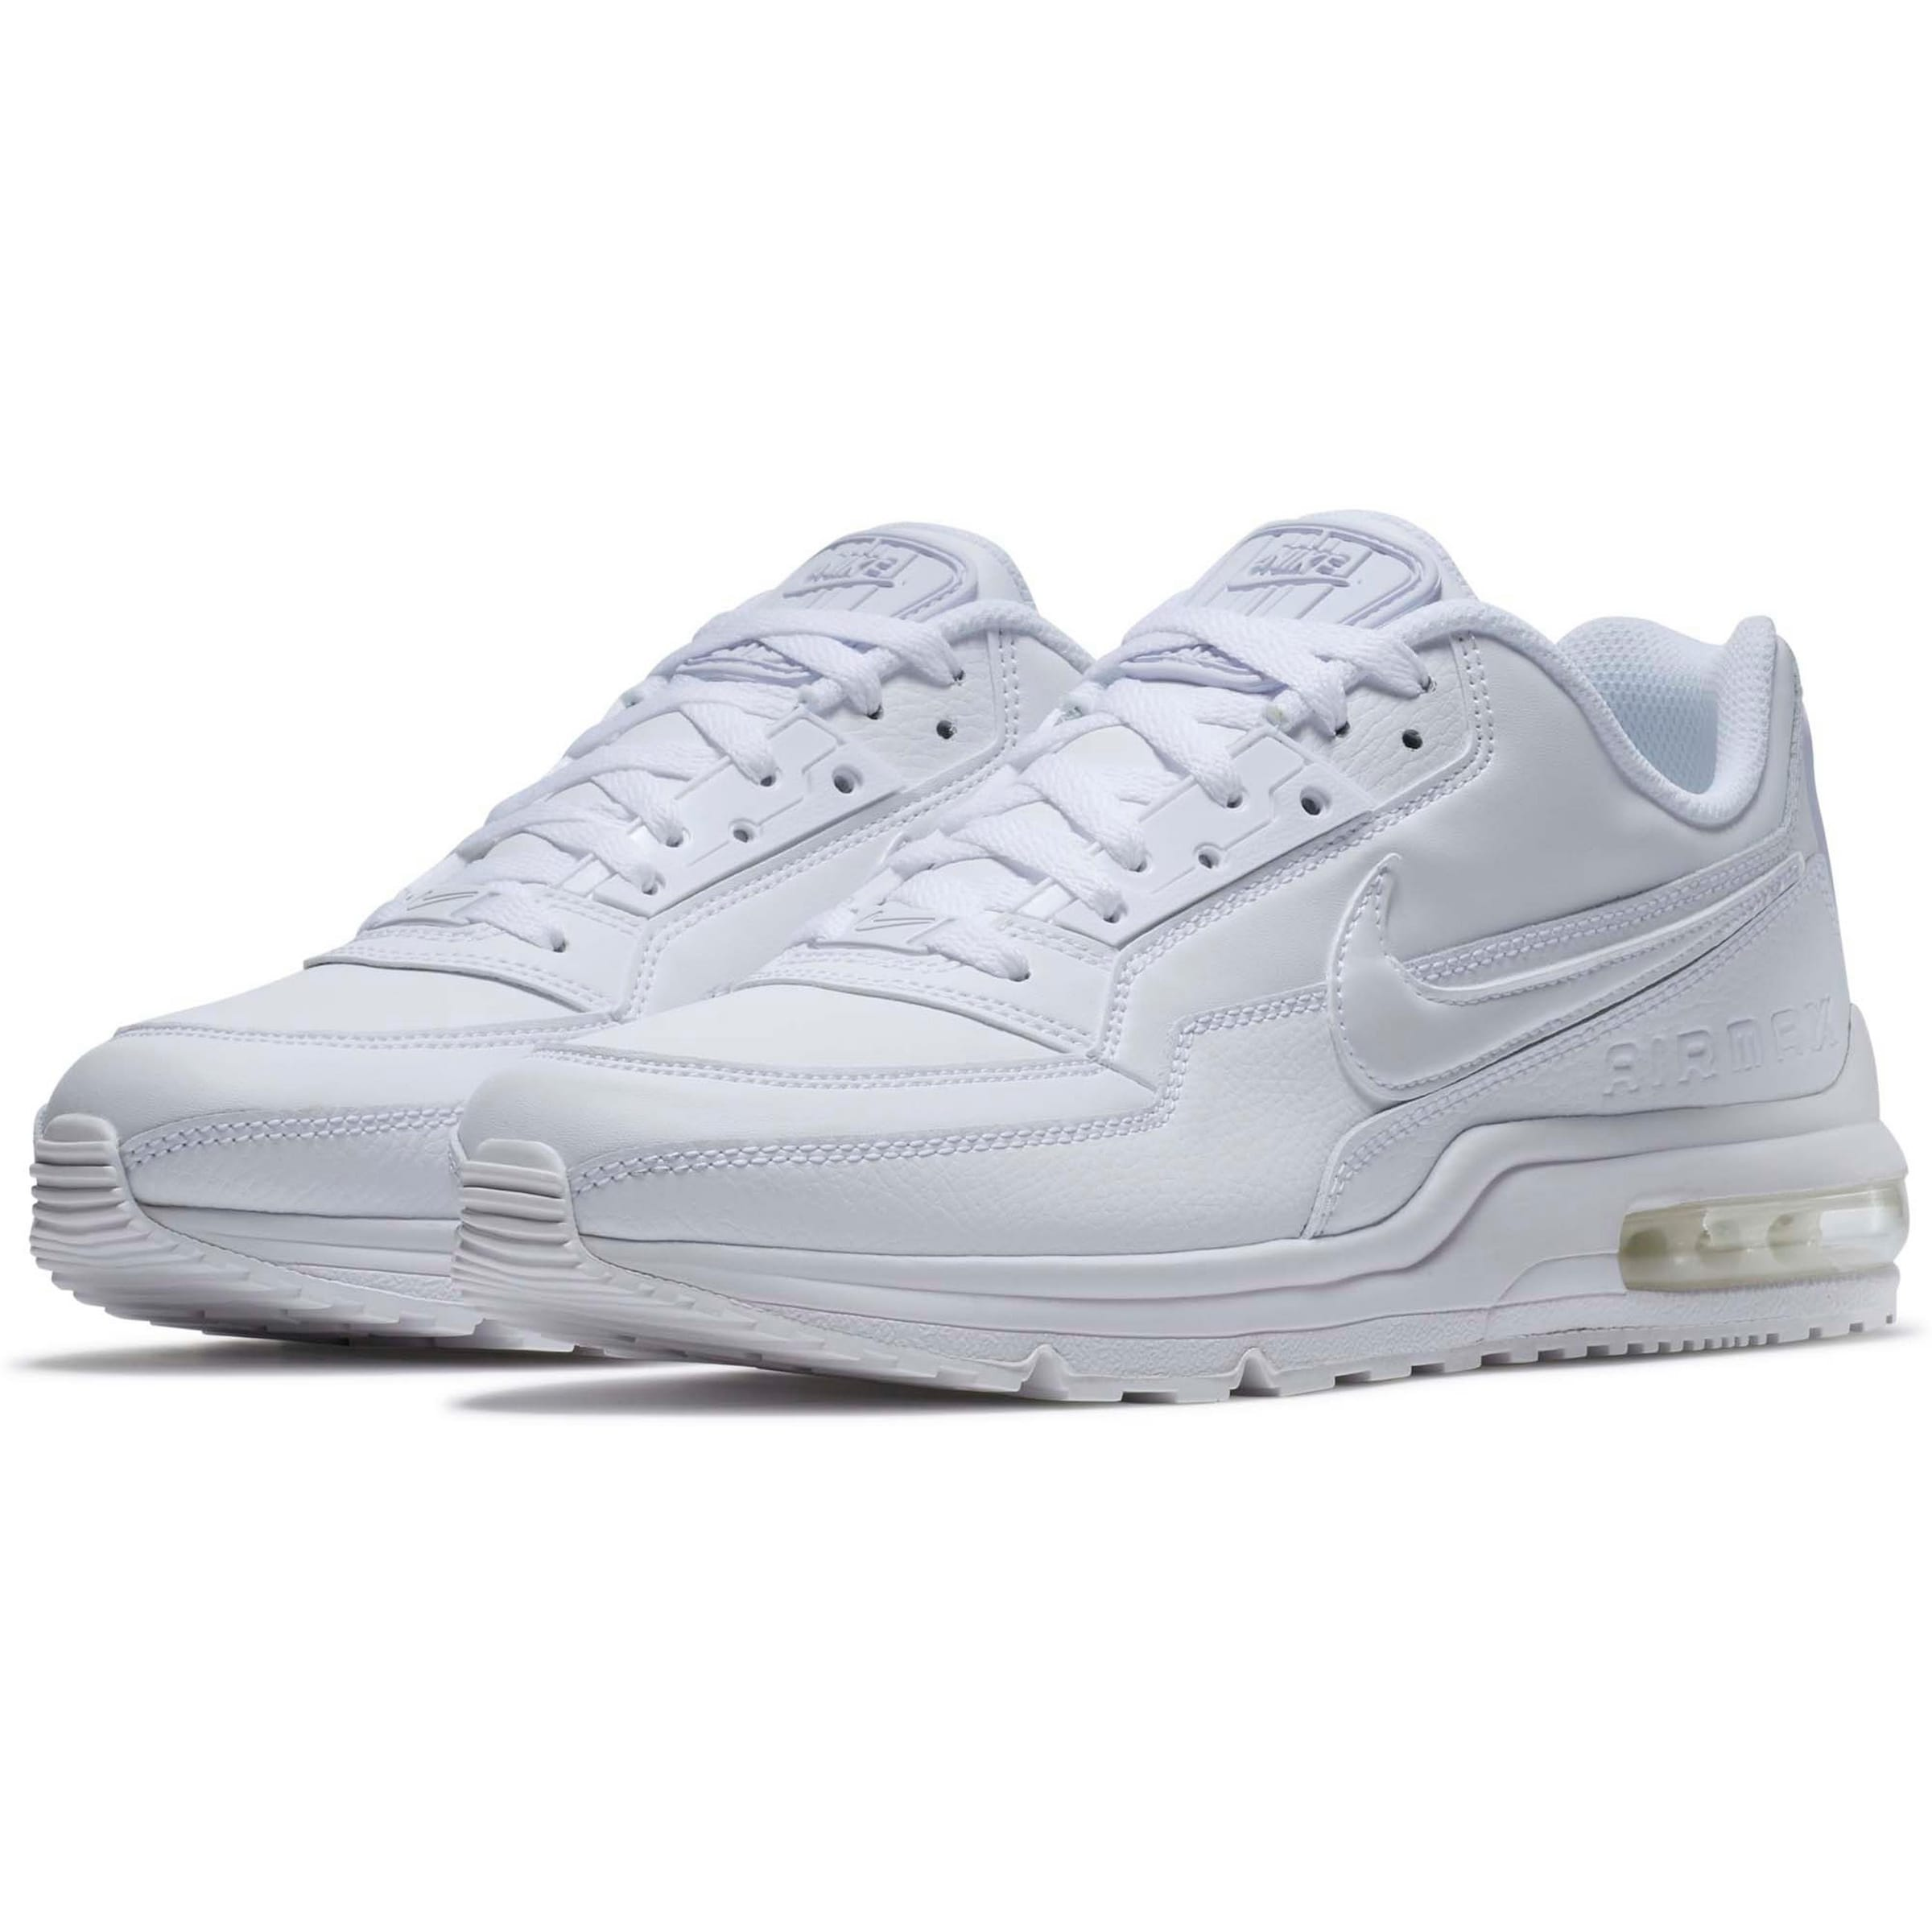 Sneaker 'air 3' In Sportswear Max Weiß Ltd Nike 3L54RjA